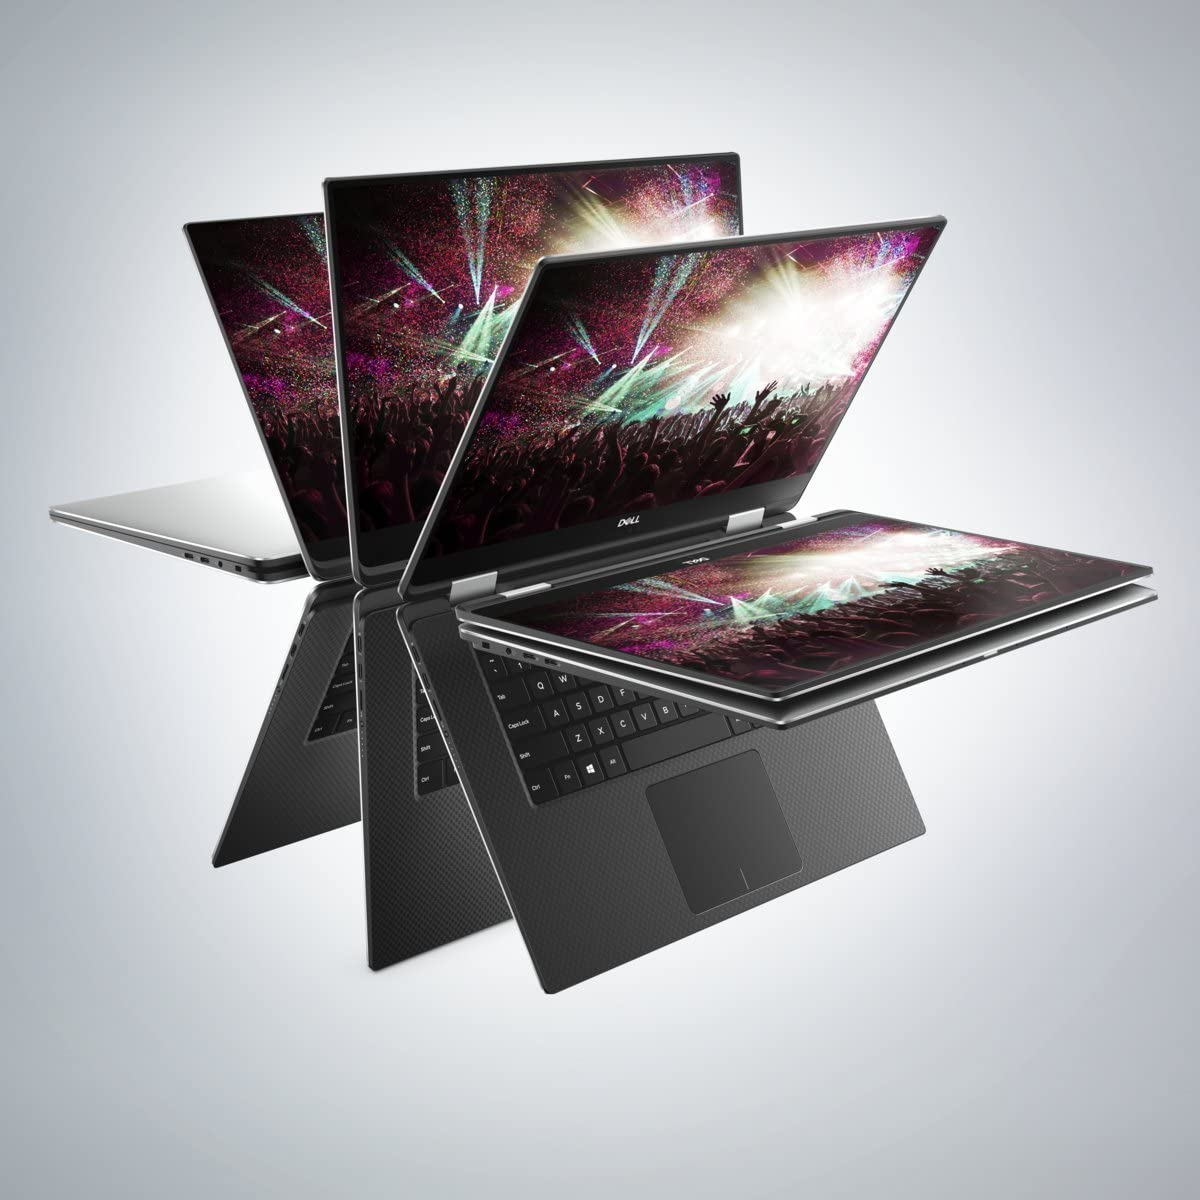 Latest Dell XPS 15 9575 2-in-1 15.6in FHD (1920 x 1080) InfinityEdge Anti-Reflective Touch, 8th Gen Intel Core i7-8705G, Radeon RX Vega M, 8GB, 256GB SSD, WIN 10 (Renewed)